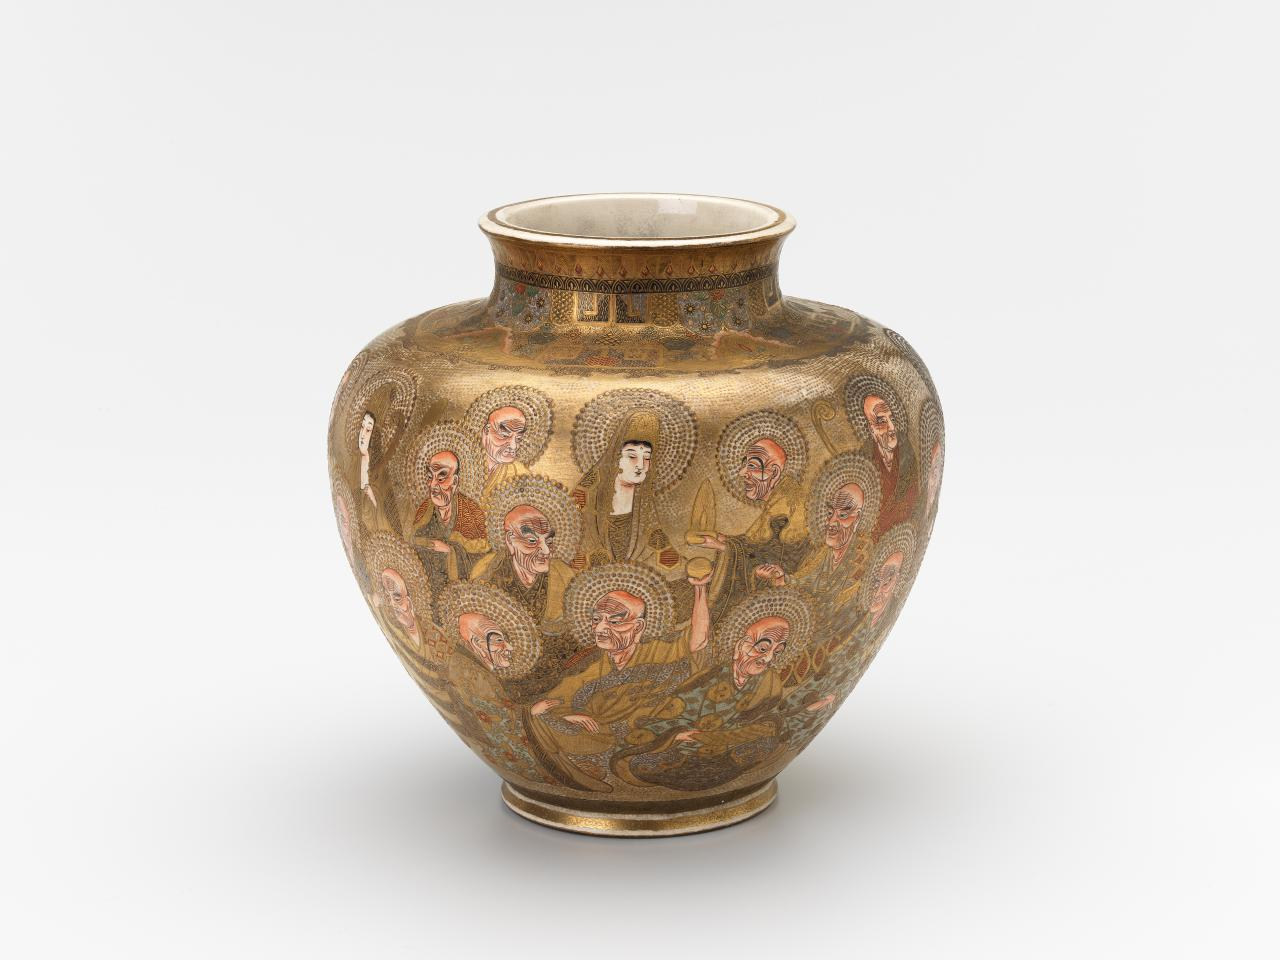 Jar with arhats